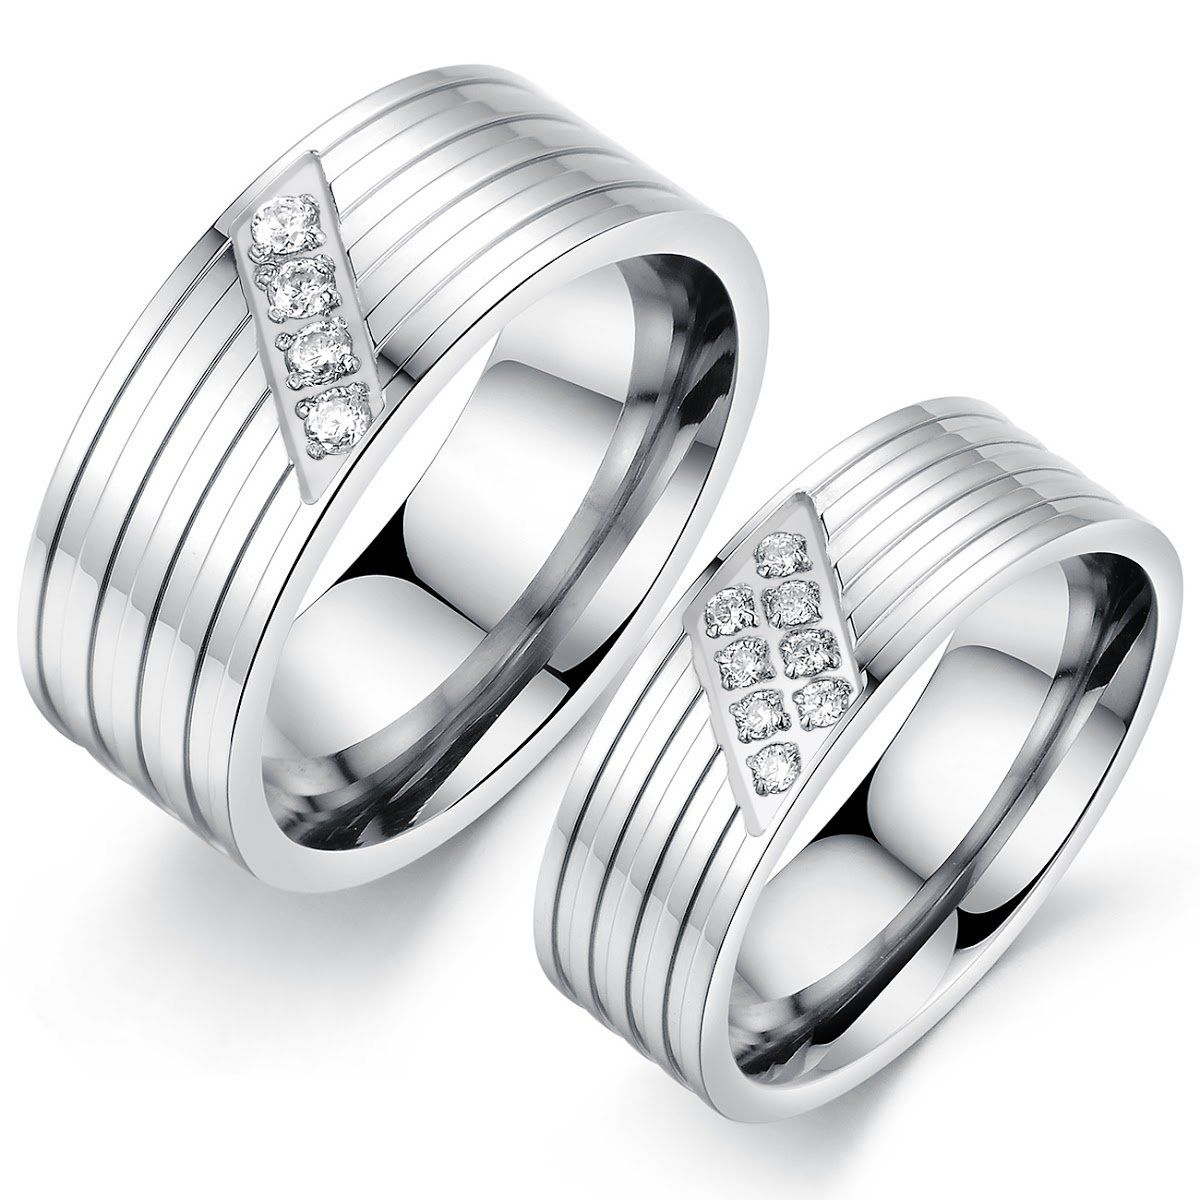 Jewelry Etc. Elegant Couple Stainless Steel Wedding Band